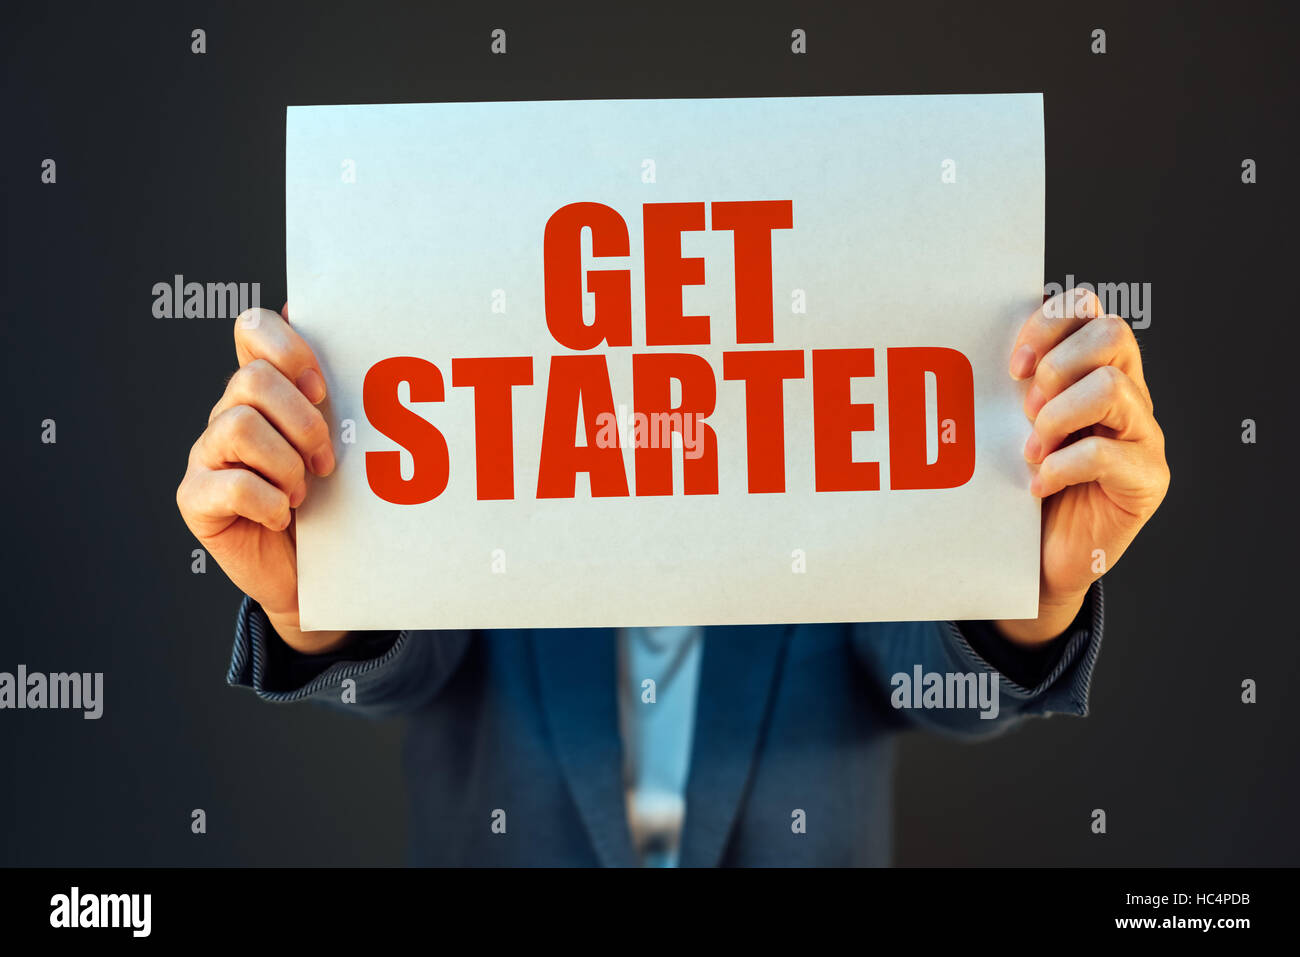 Get started business motivational message held by businesswoman, company start up concept - Stock Image